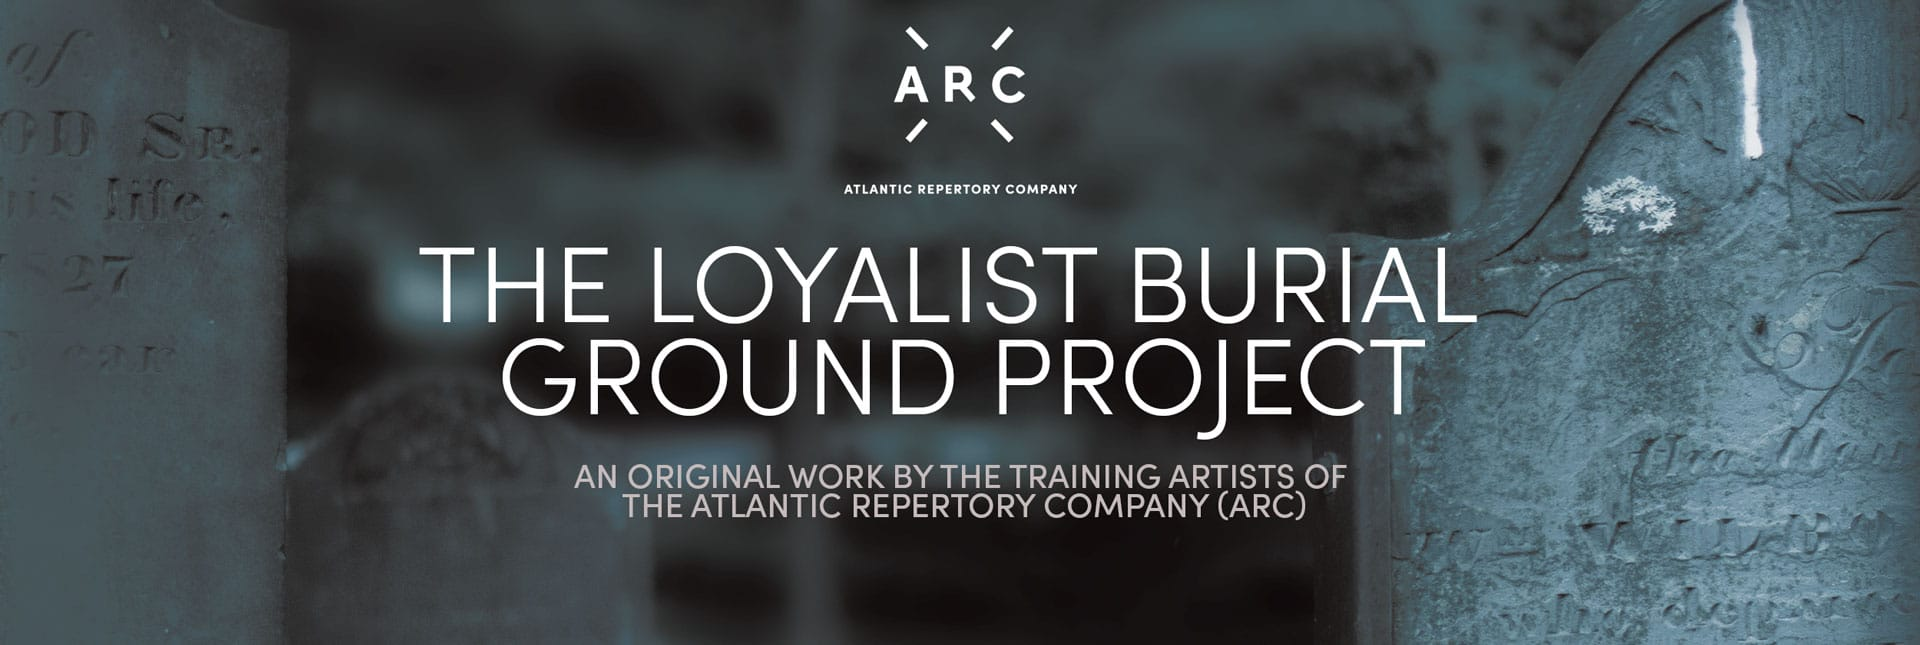 The Loyalist Burial Ground Project Production